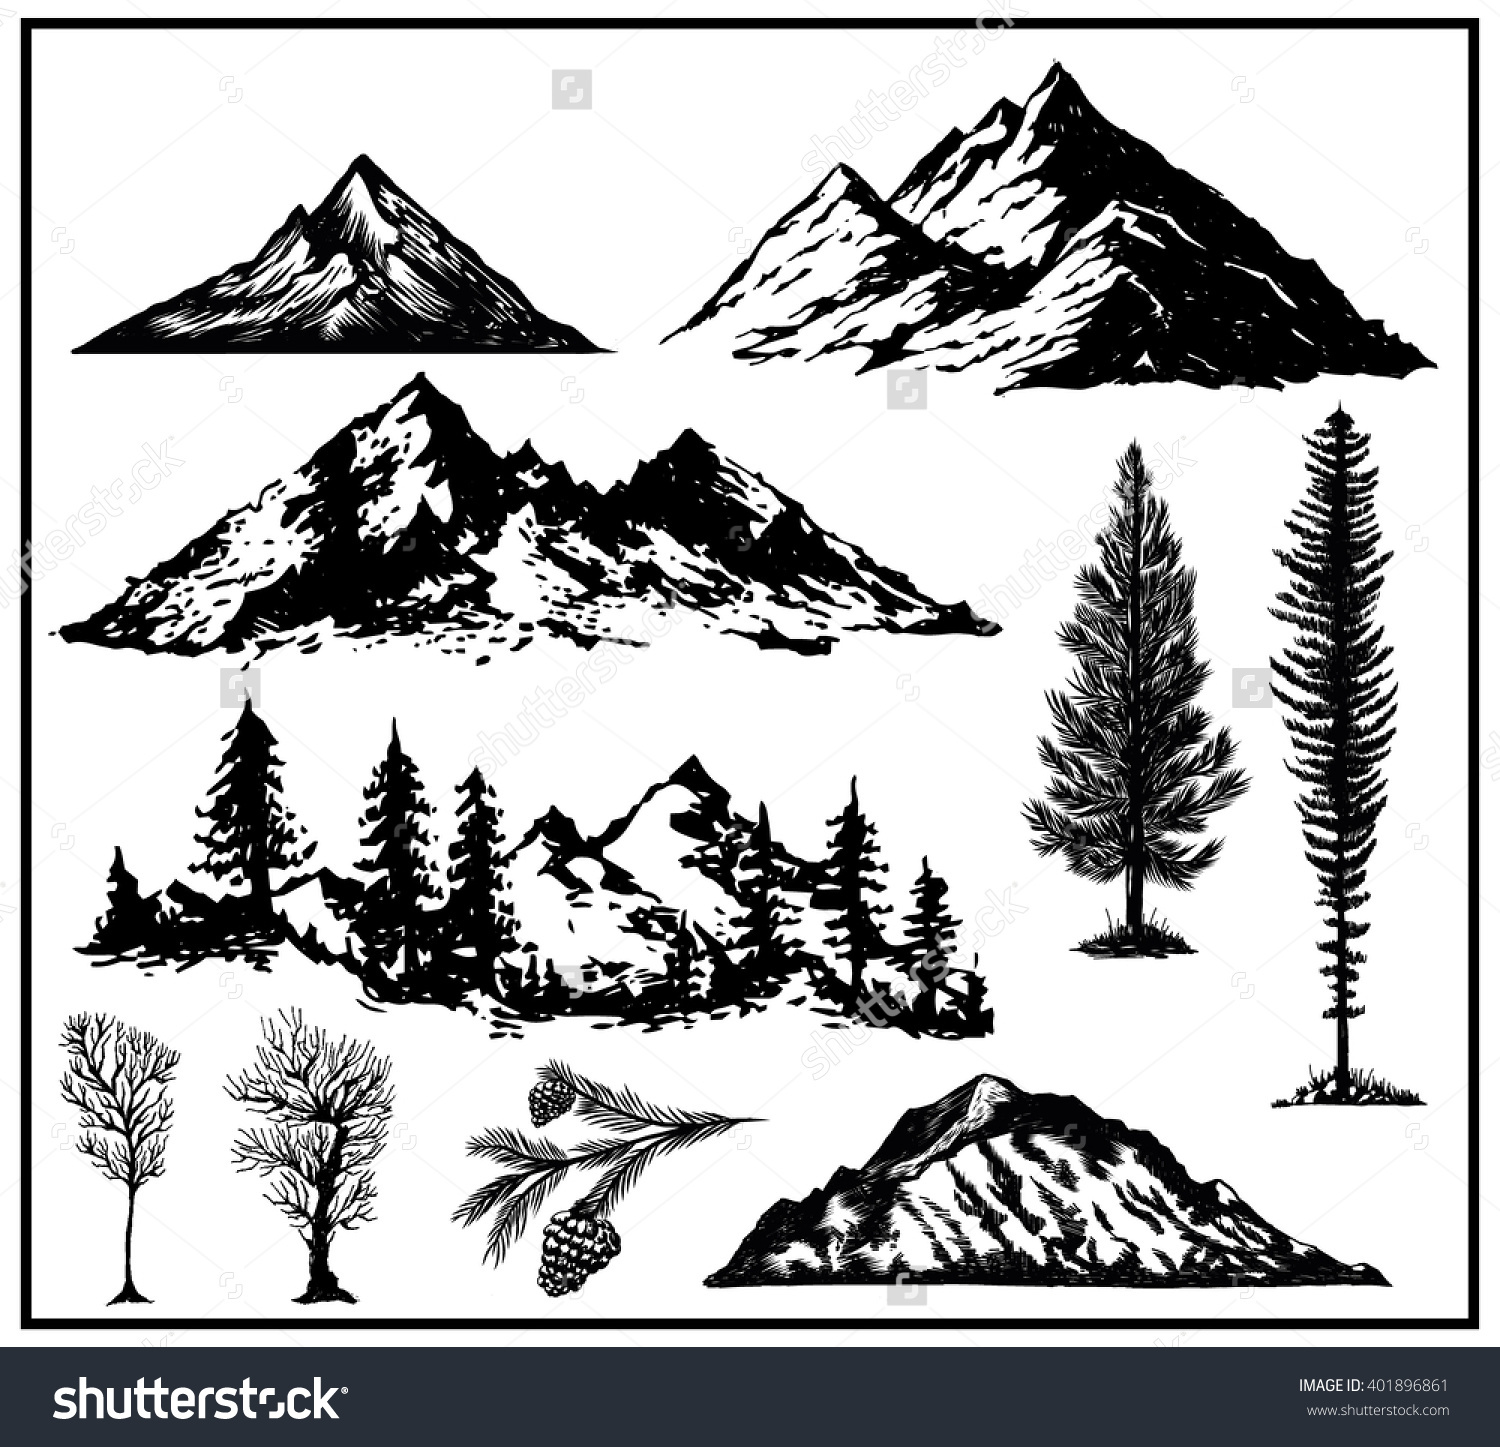 Outdoor Art Hand Drawn Nature Pines Stock Vector 401896861.